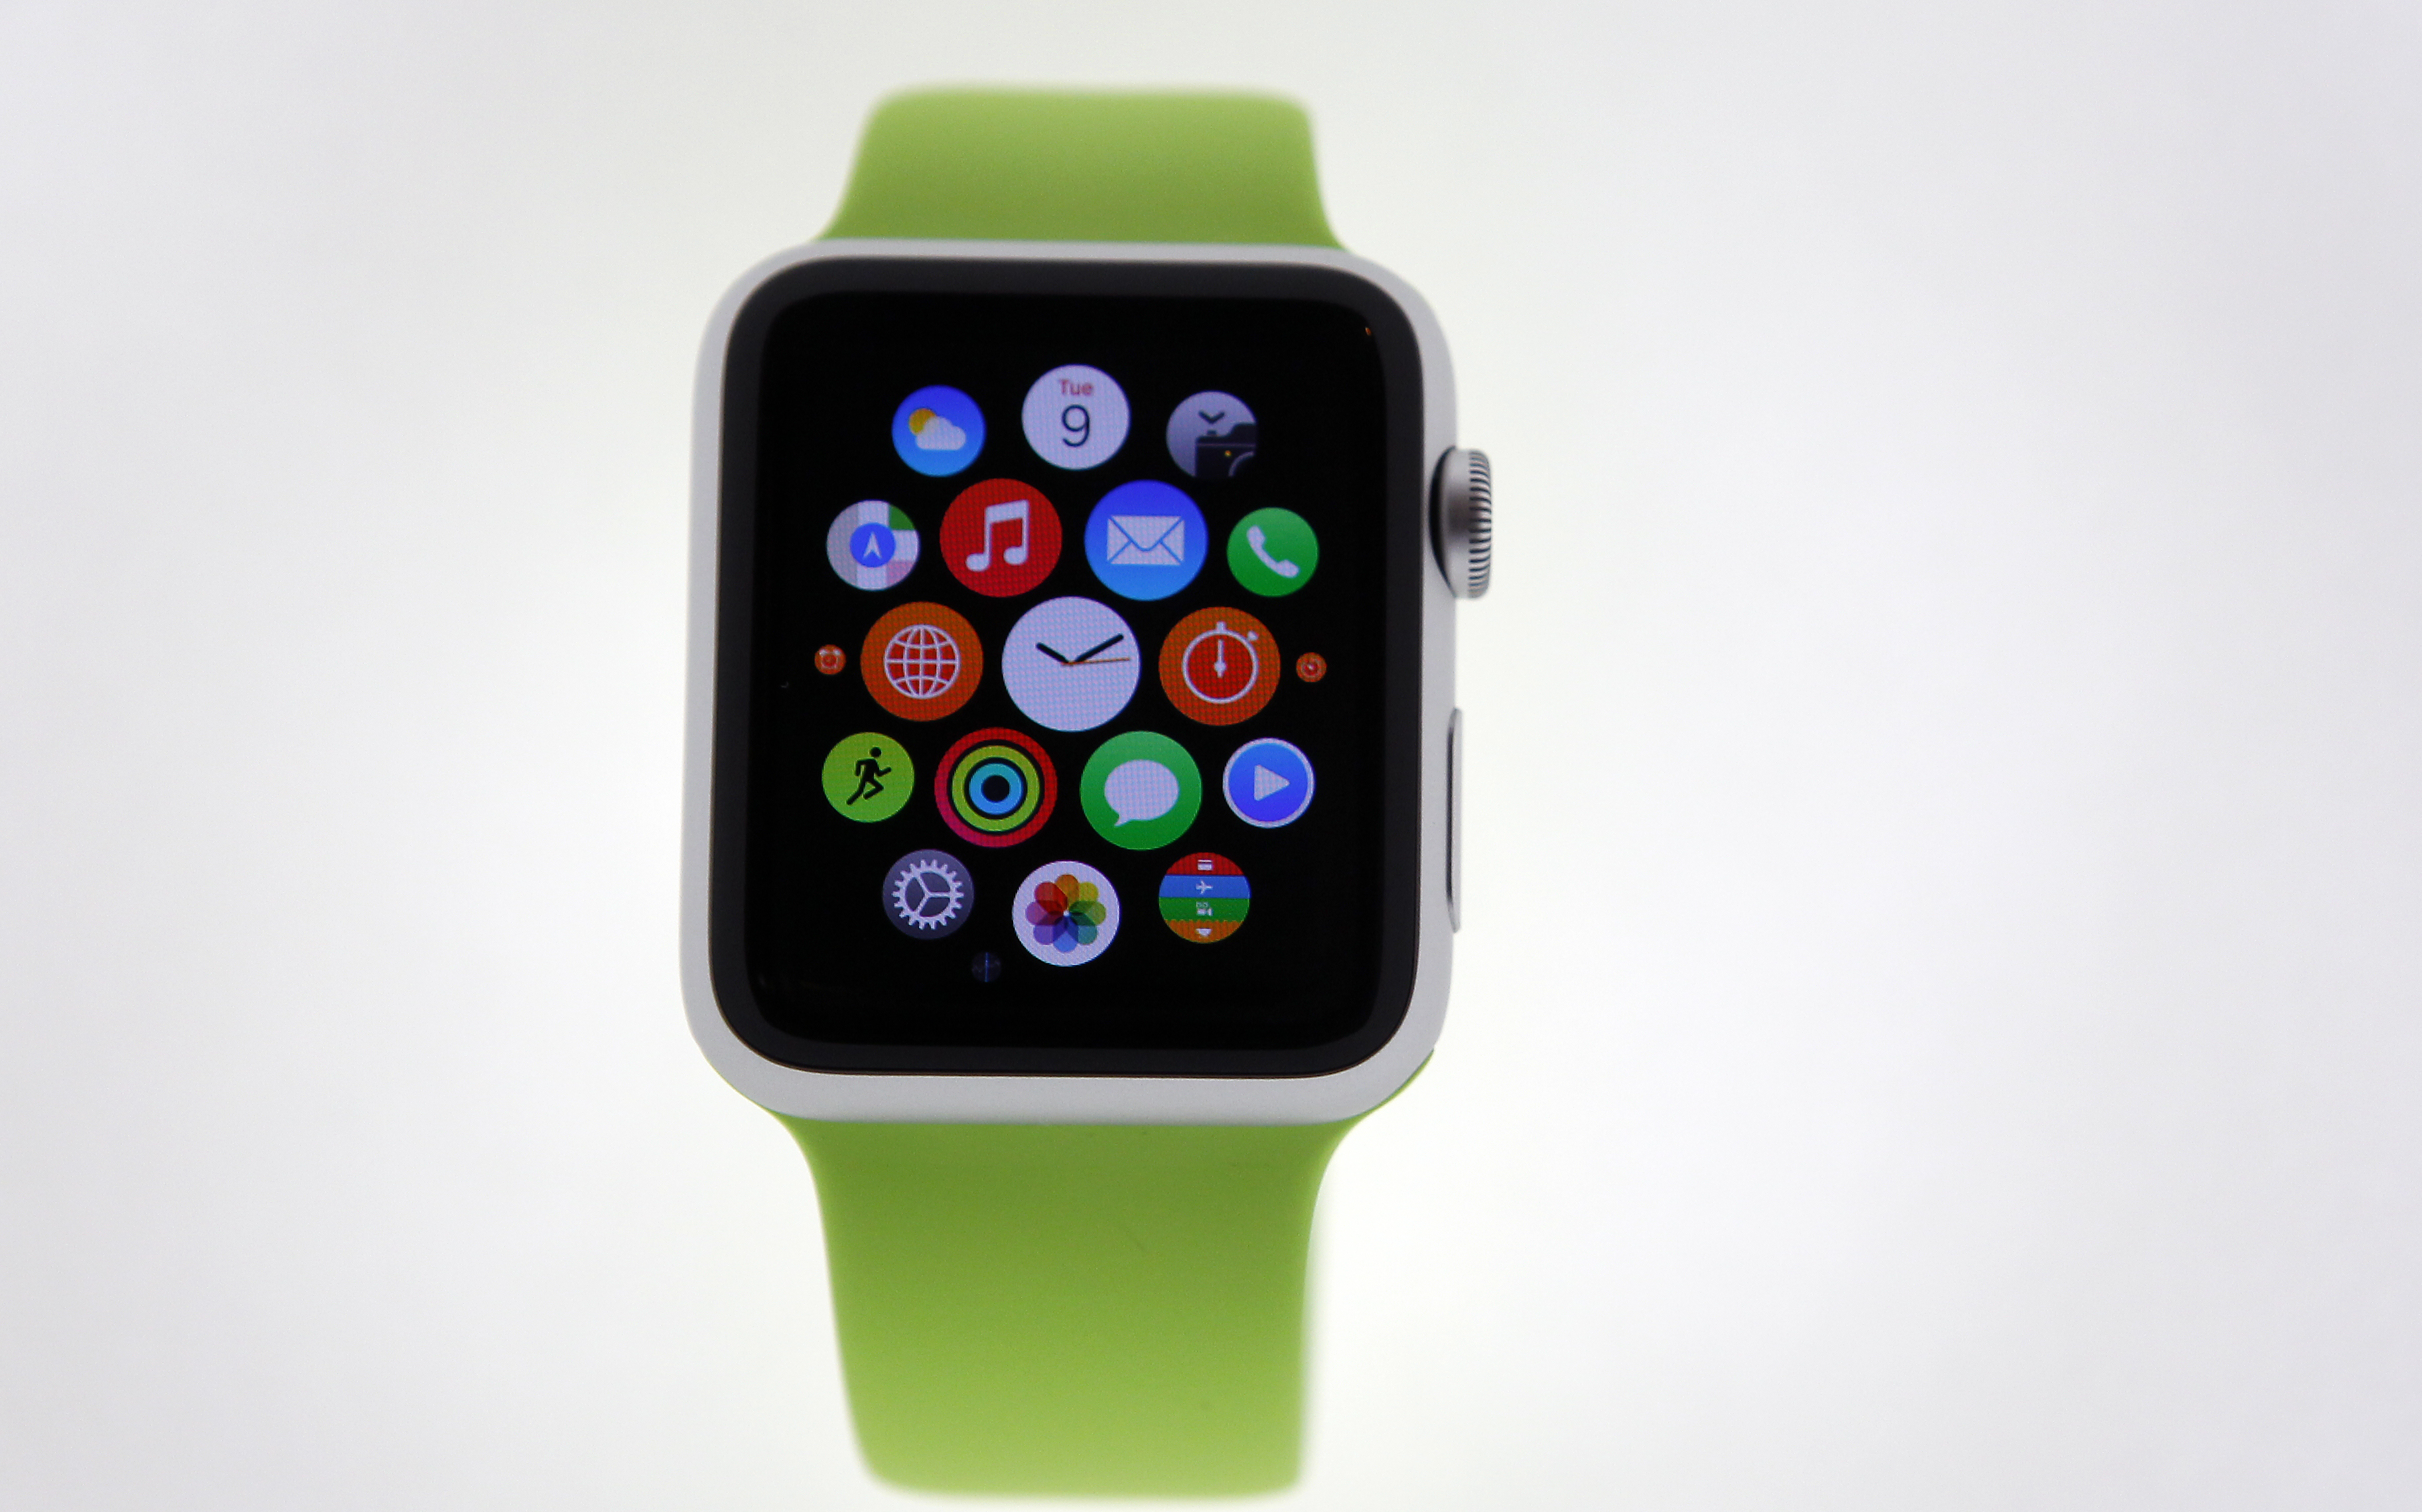 The Apple Watch is displayed during an Apple special event at Colette store on Sept. 30, 2014 in Paris, France.